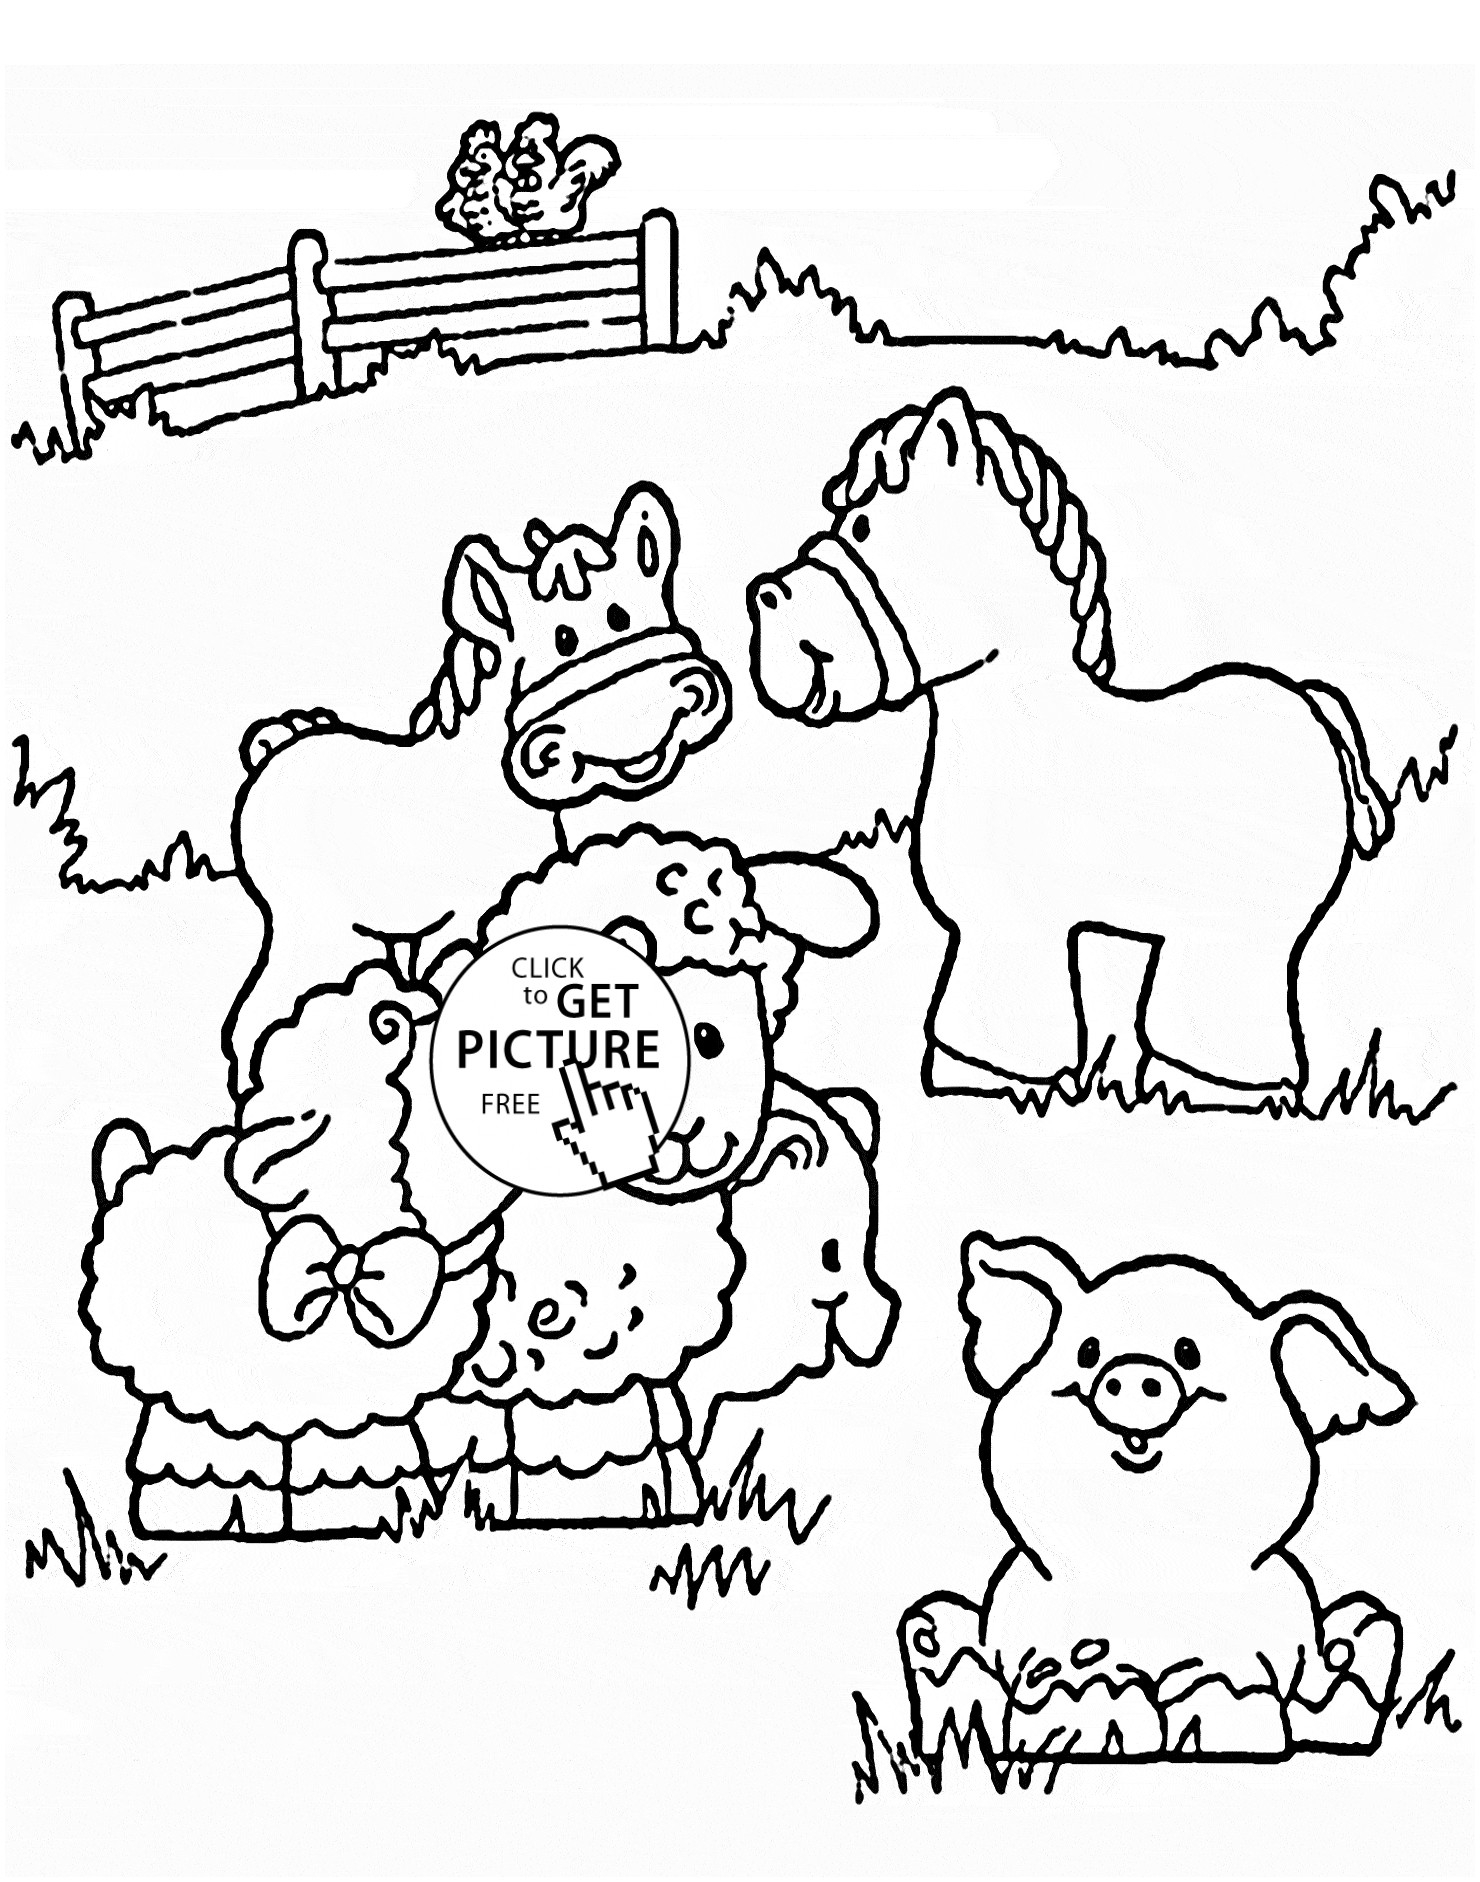 hand washing coloring pages for preschoolers Collection-Best Vases Flower Vase Coloring Page Pages Flowers In A Top I 0d Kids Coloring 16-h